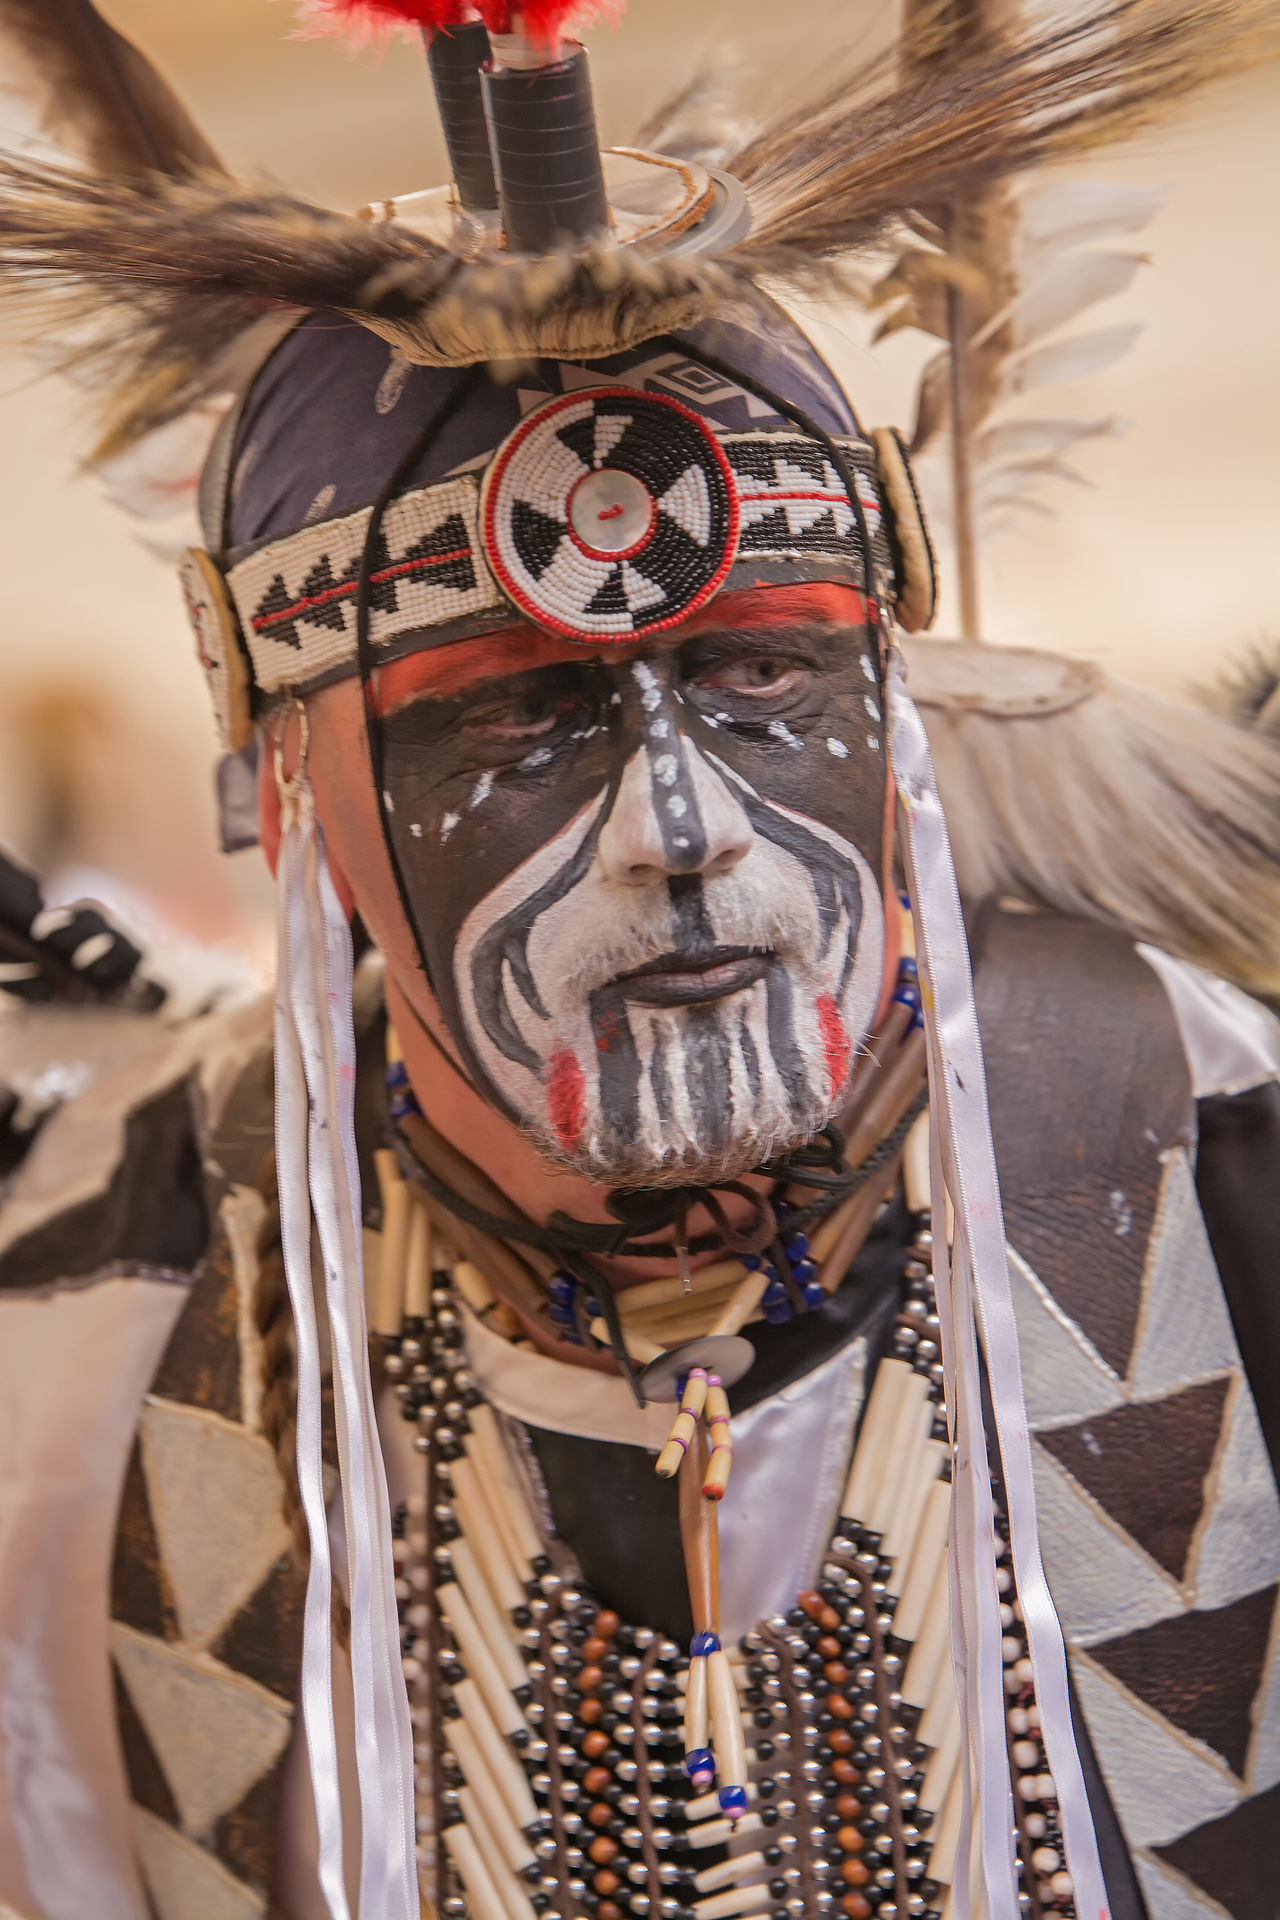 Beautiful stock photos of native american, close-up, outdoors, day, one person